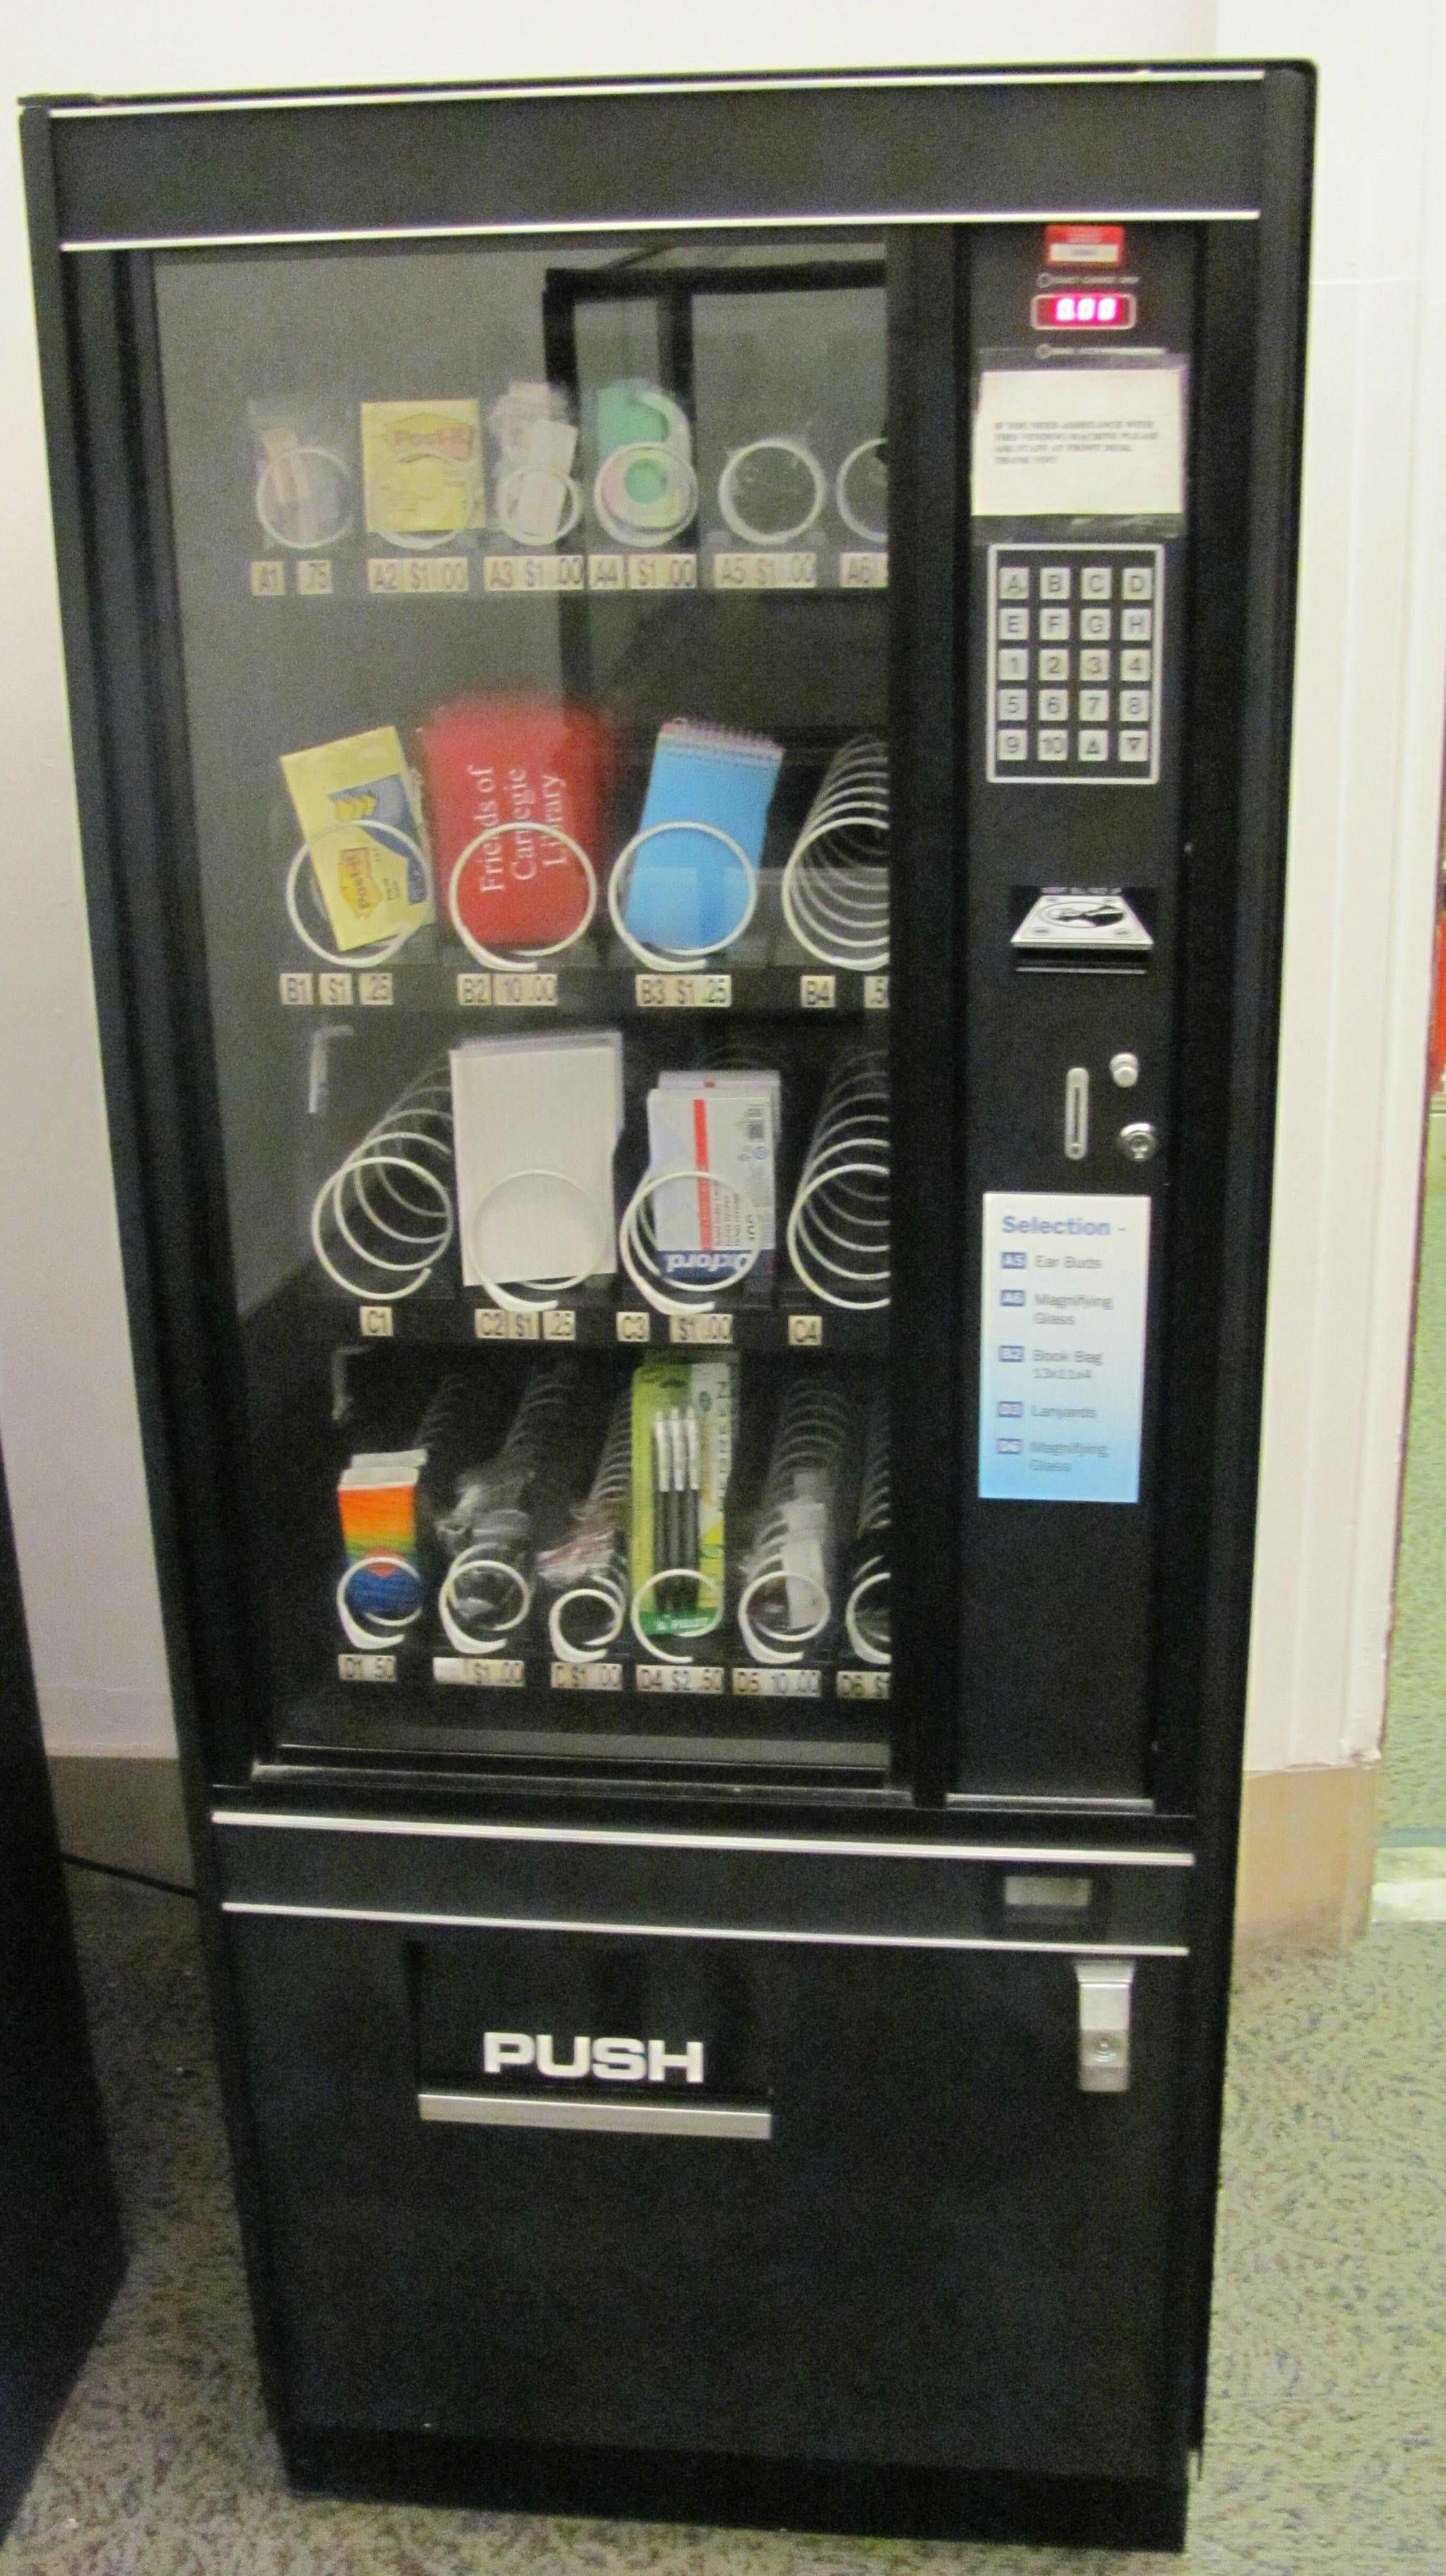 Office Supply Vending Machine Smnetwork Org Patchwork